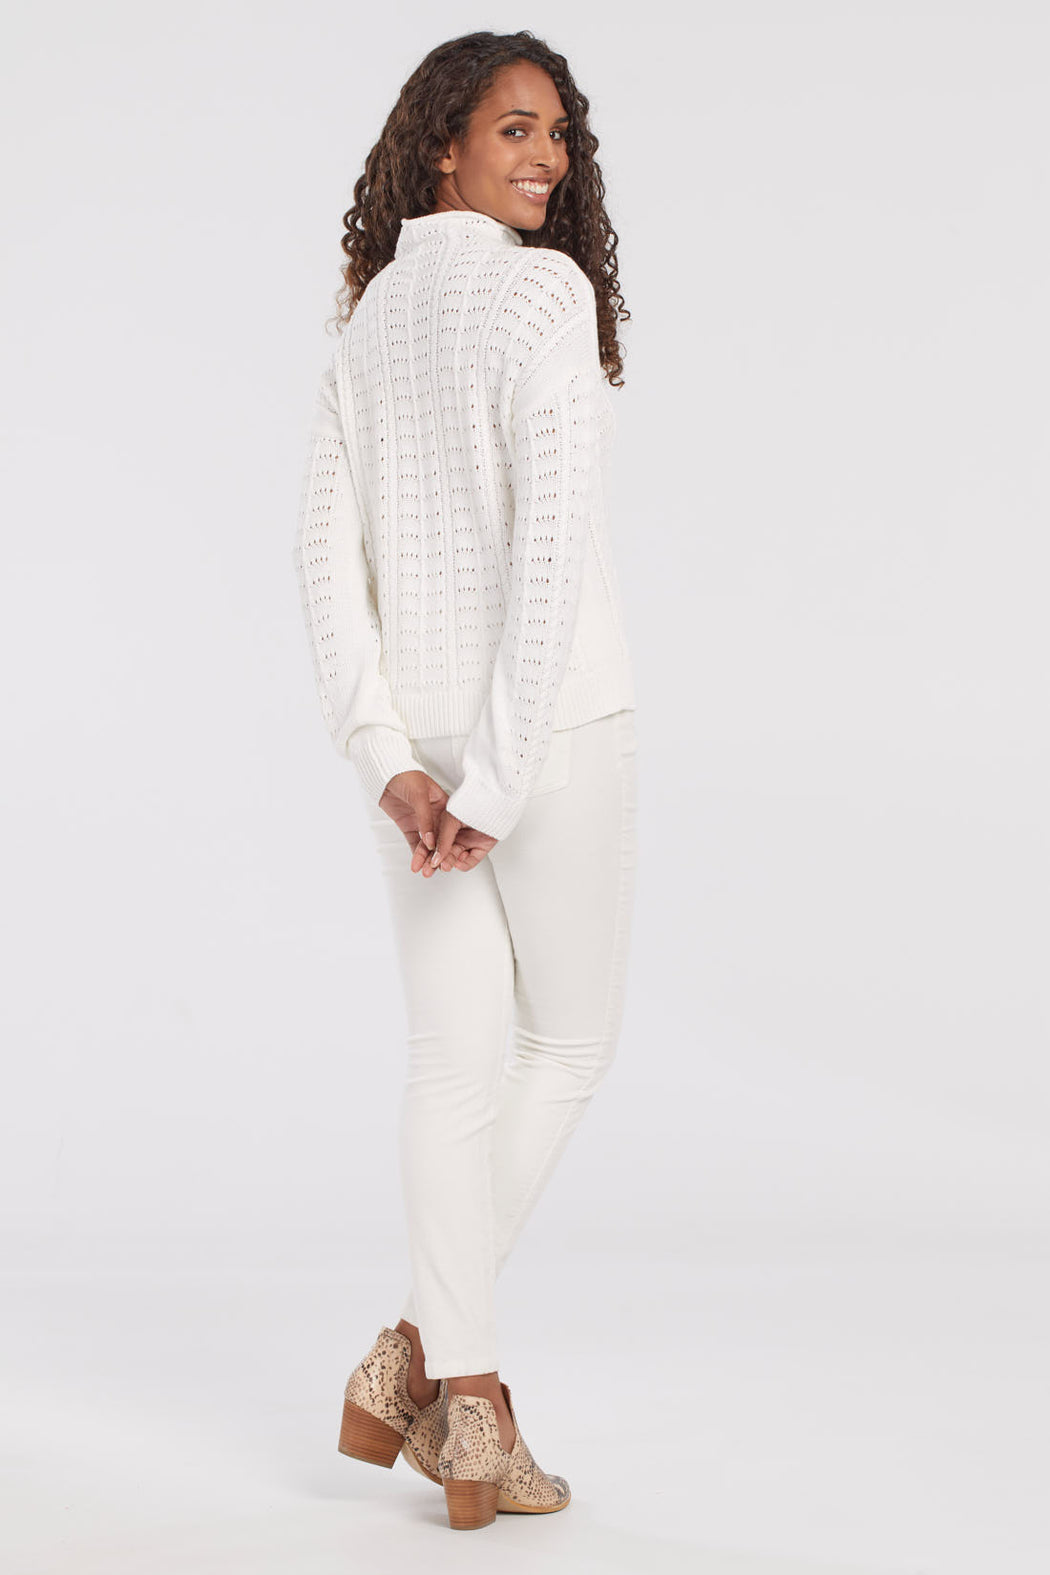 Our 100% cotton long-sleeve sweater combines this classic neckline with a delicate and playful pointelle knit pattern.